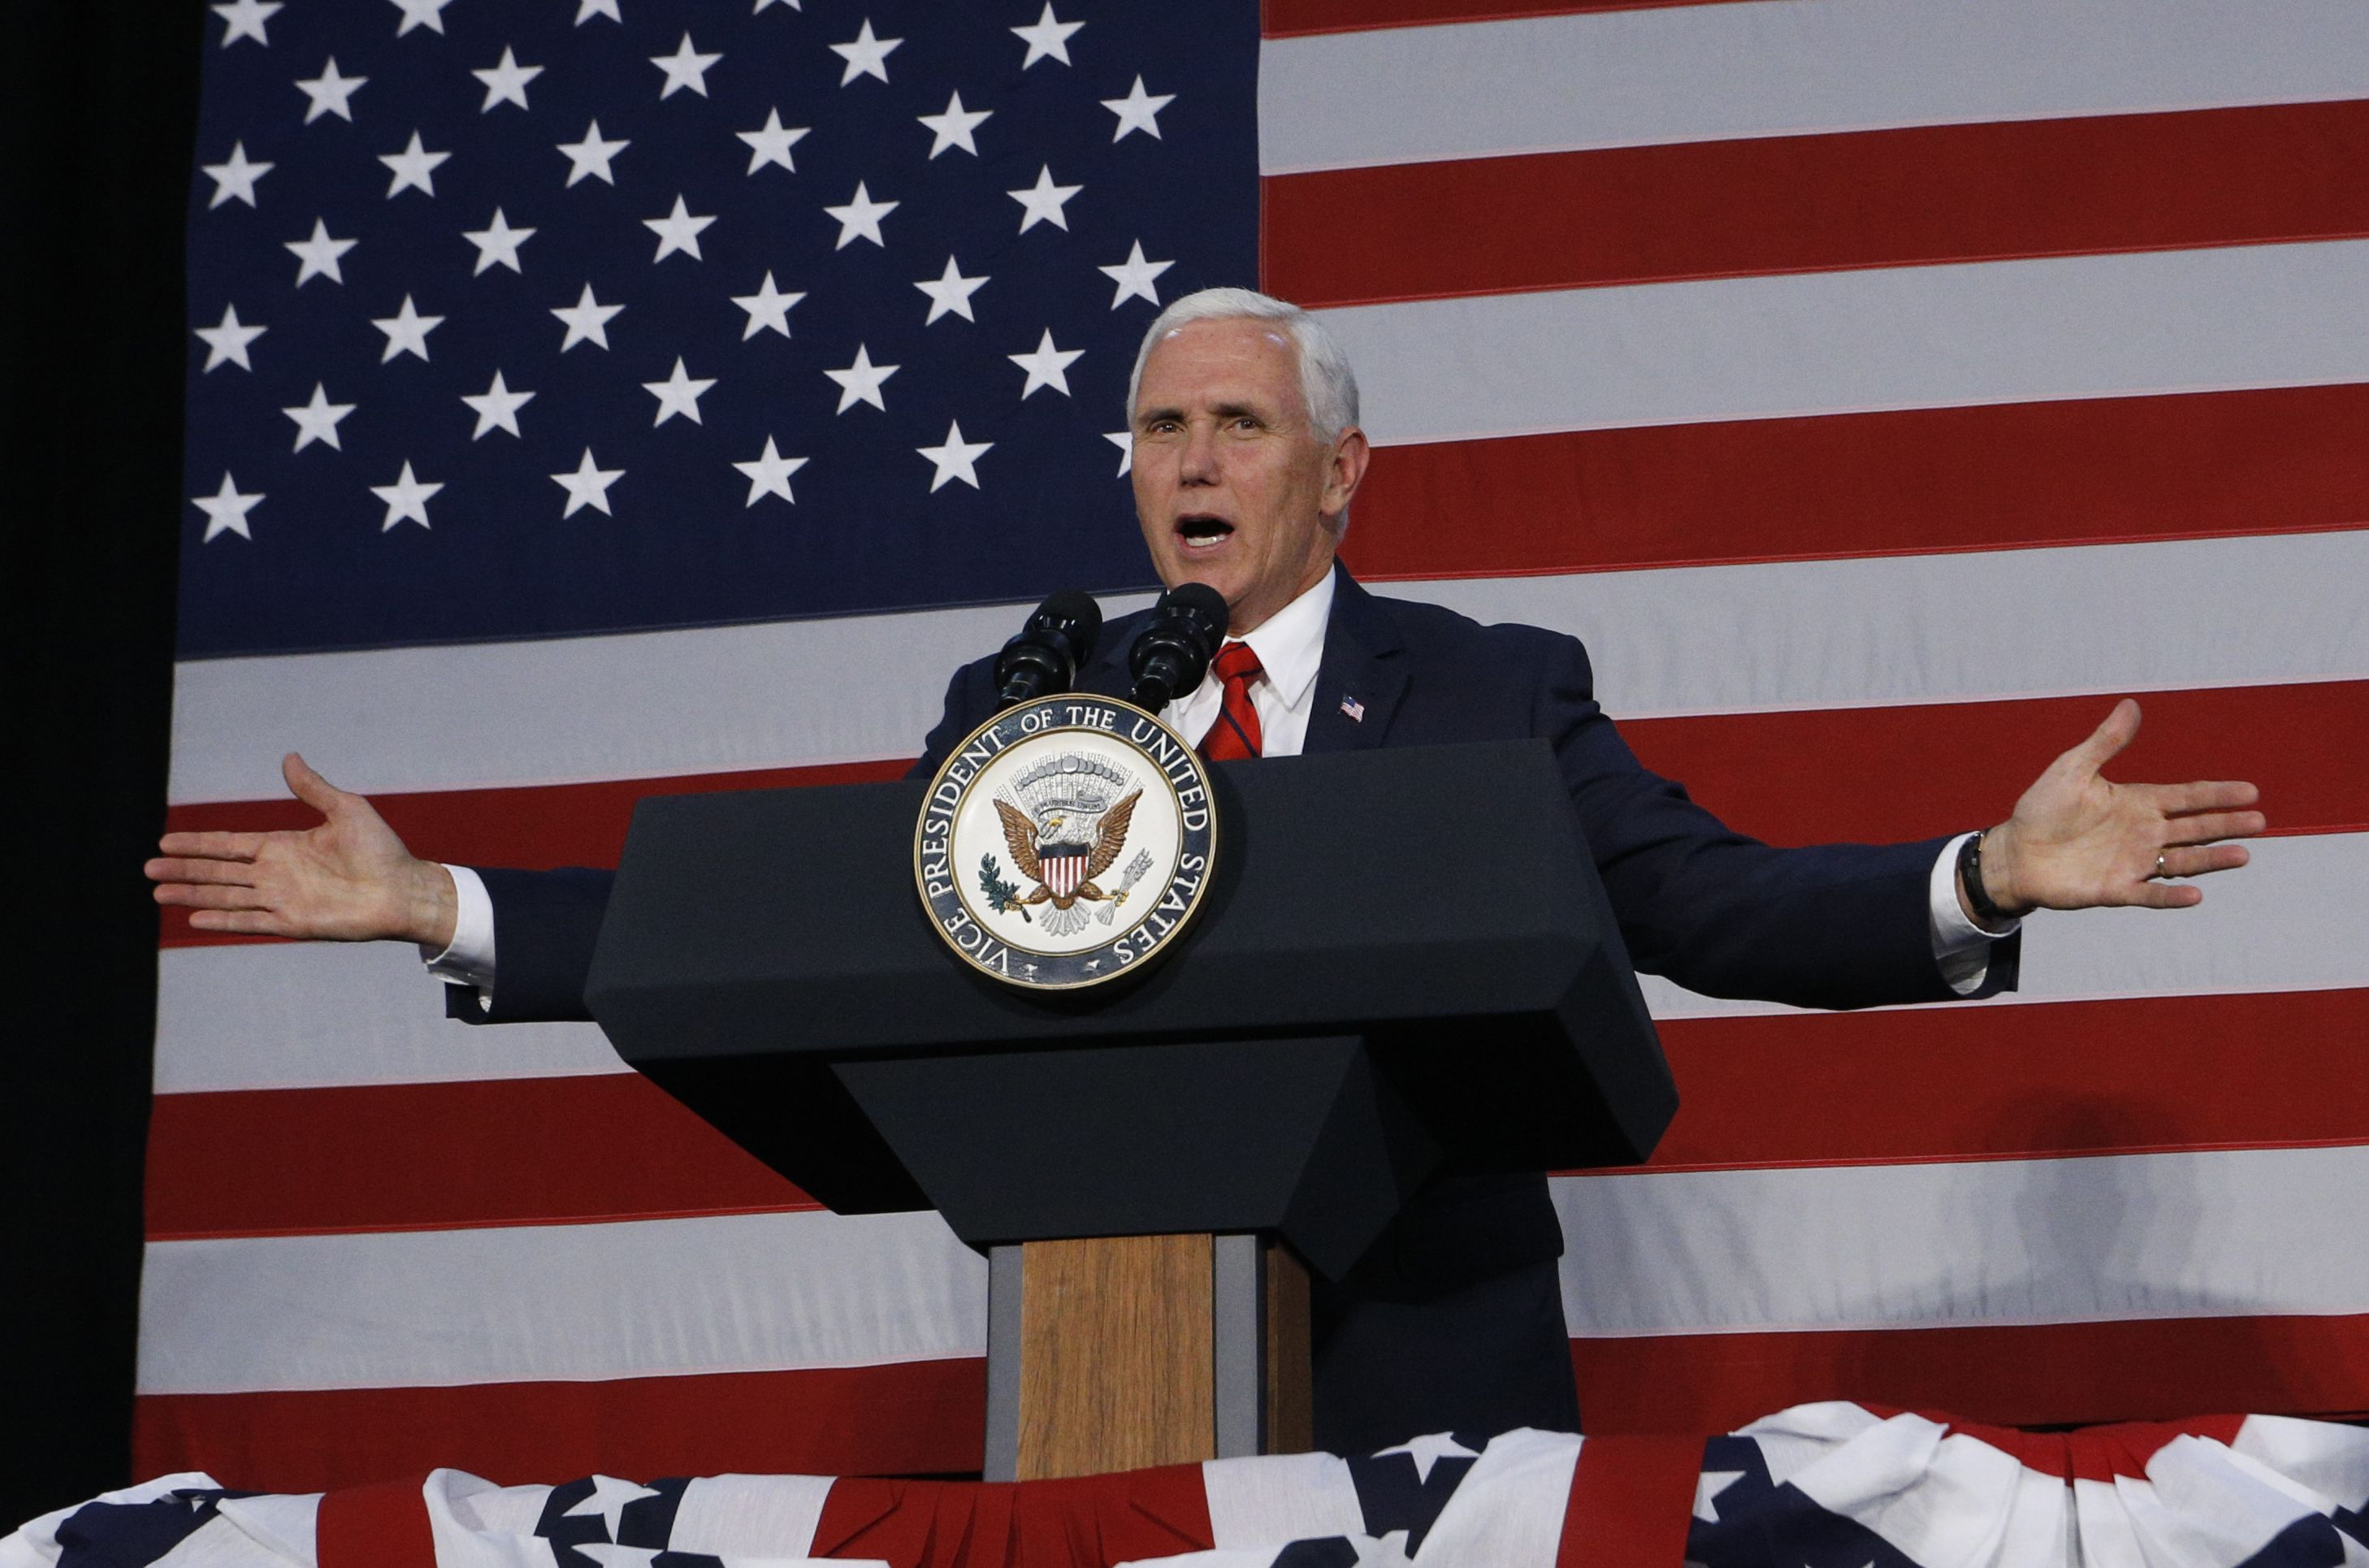 Biography Of Mike Pence United States Vice President